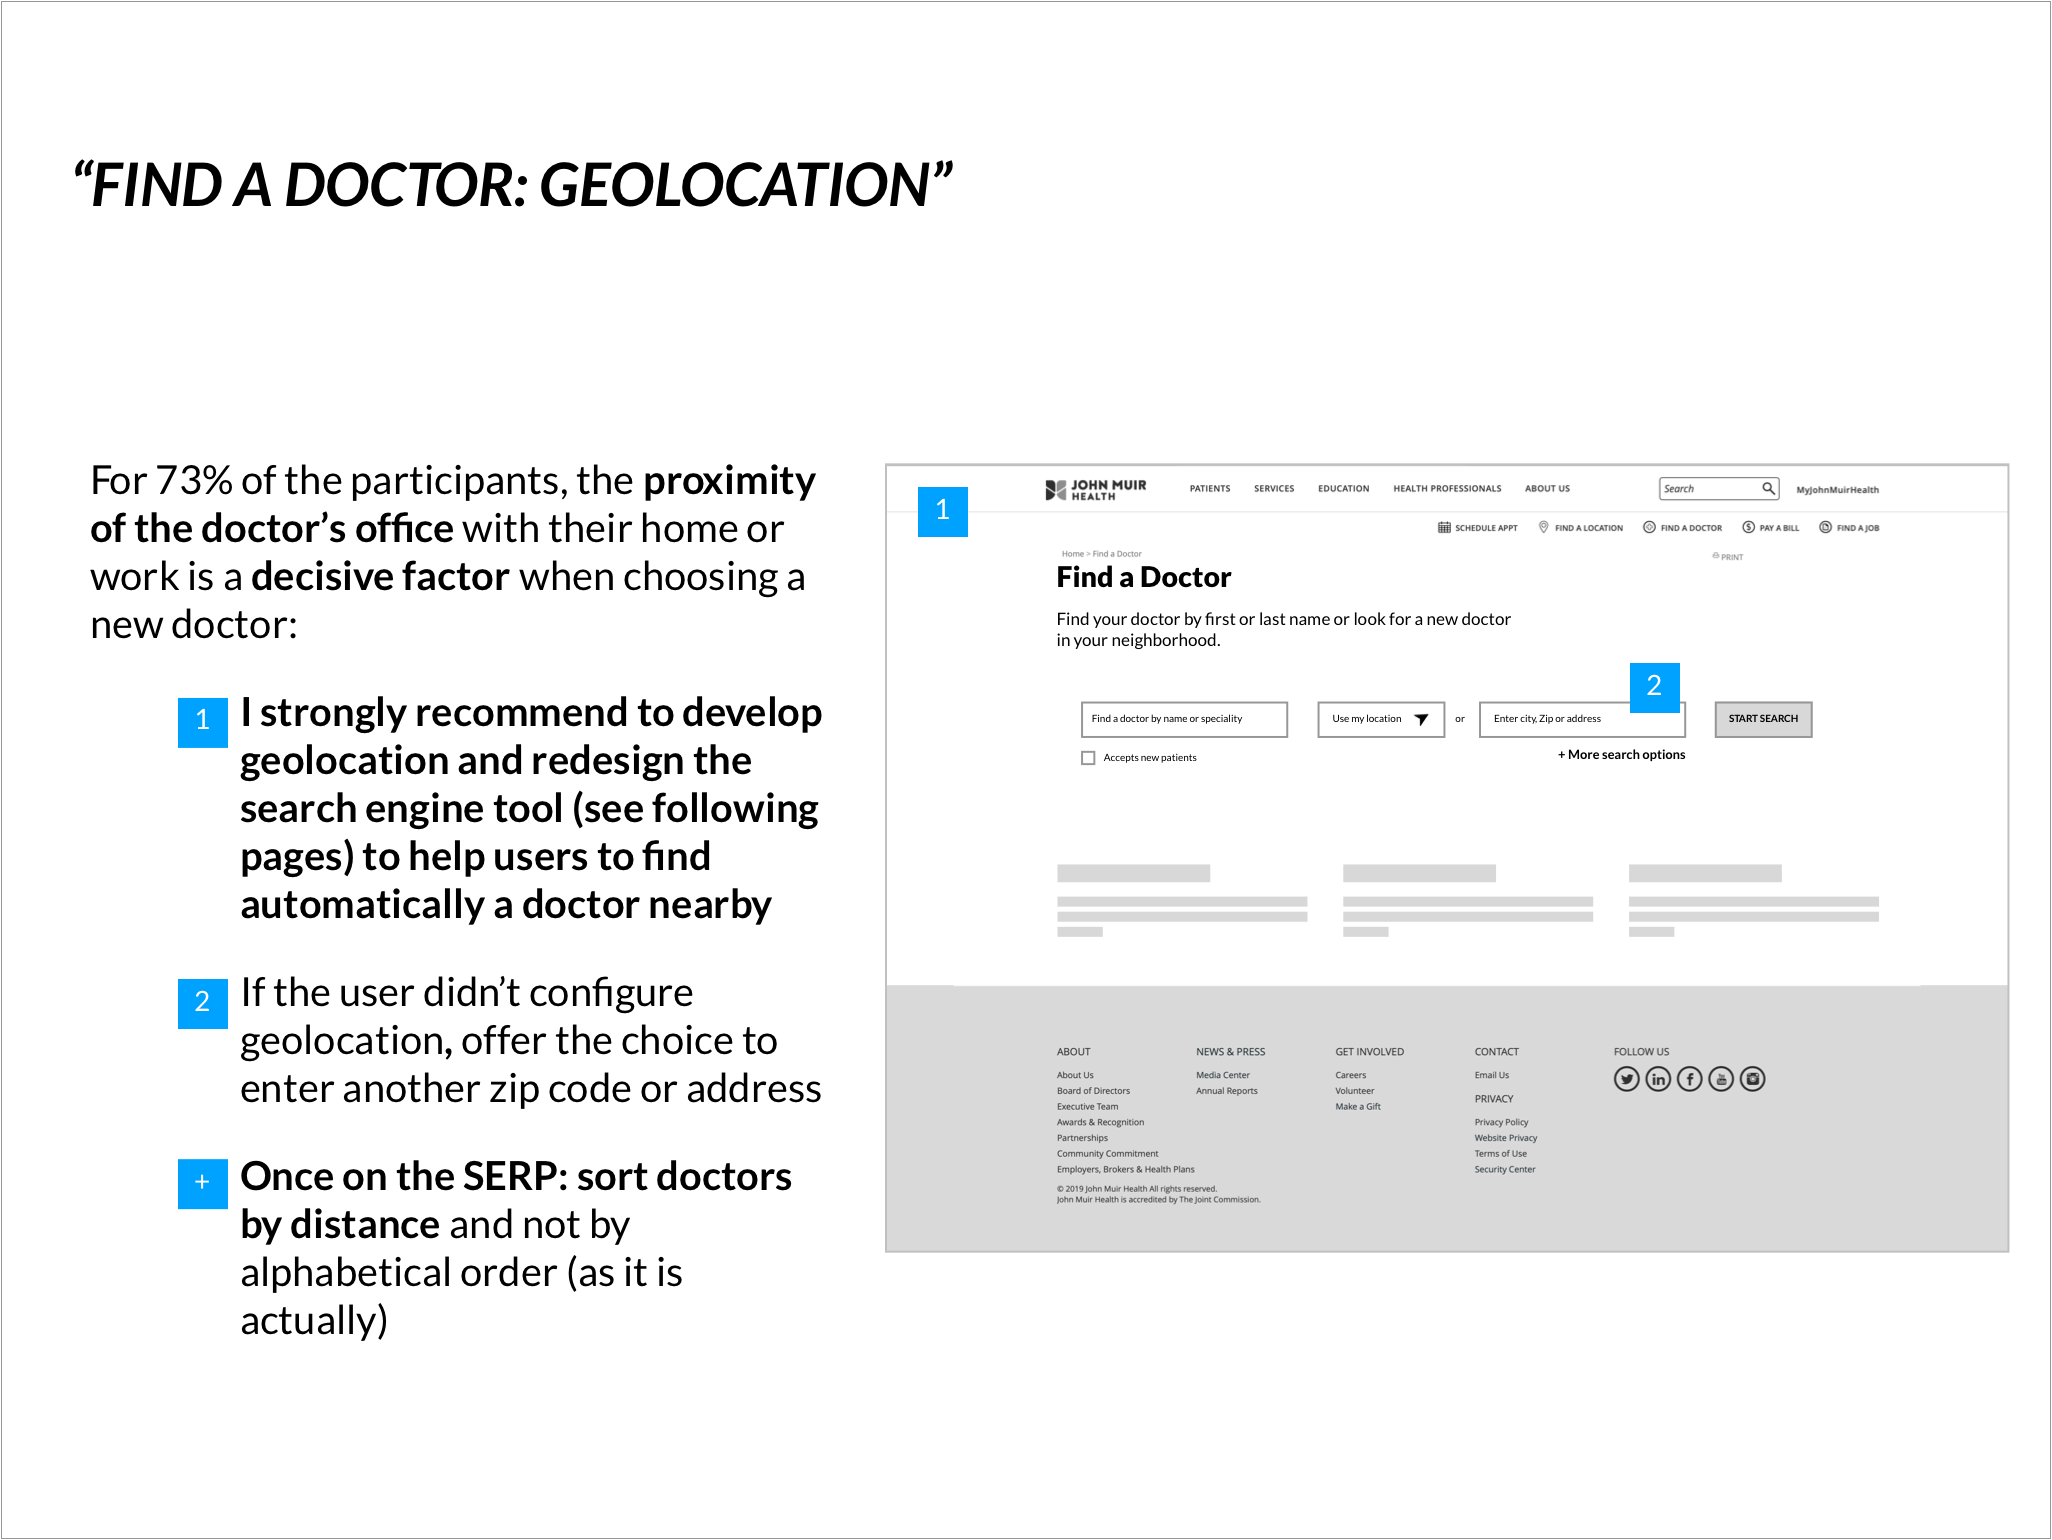 Recommendation #1: develop geolocation